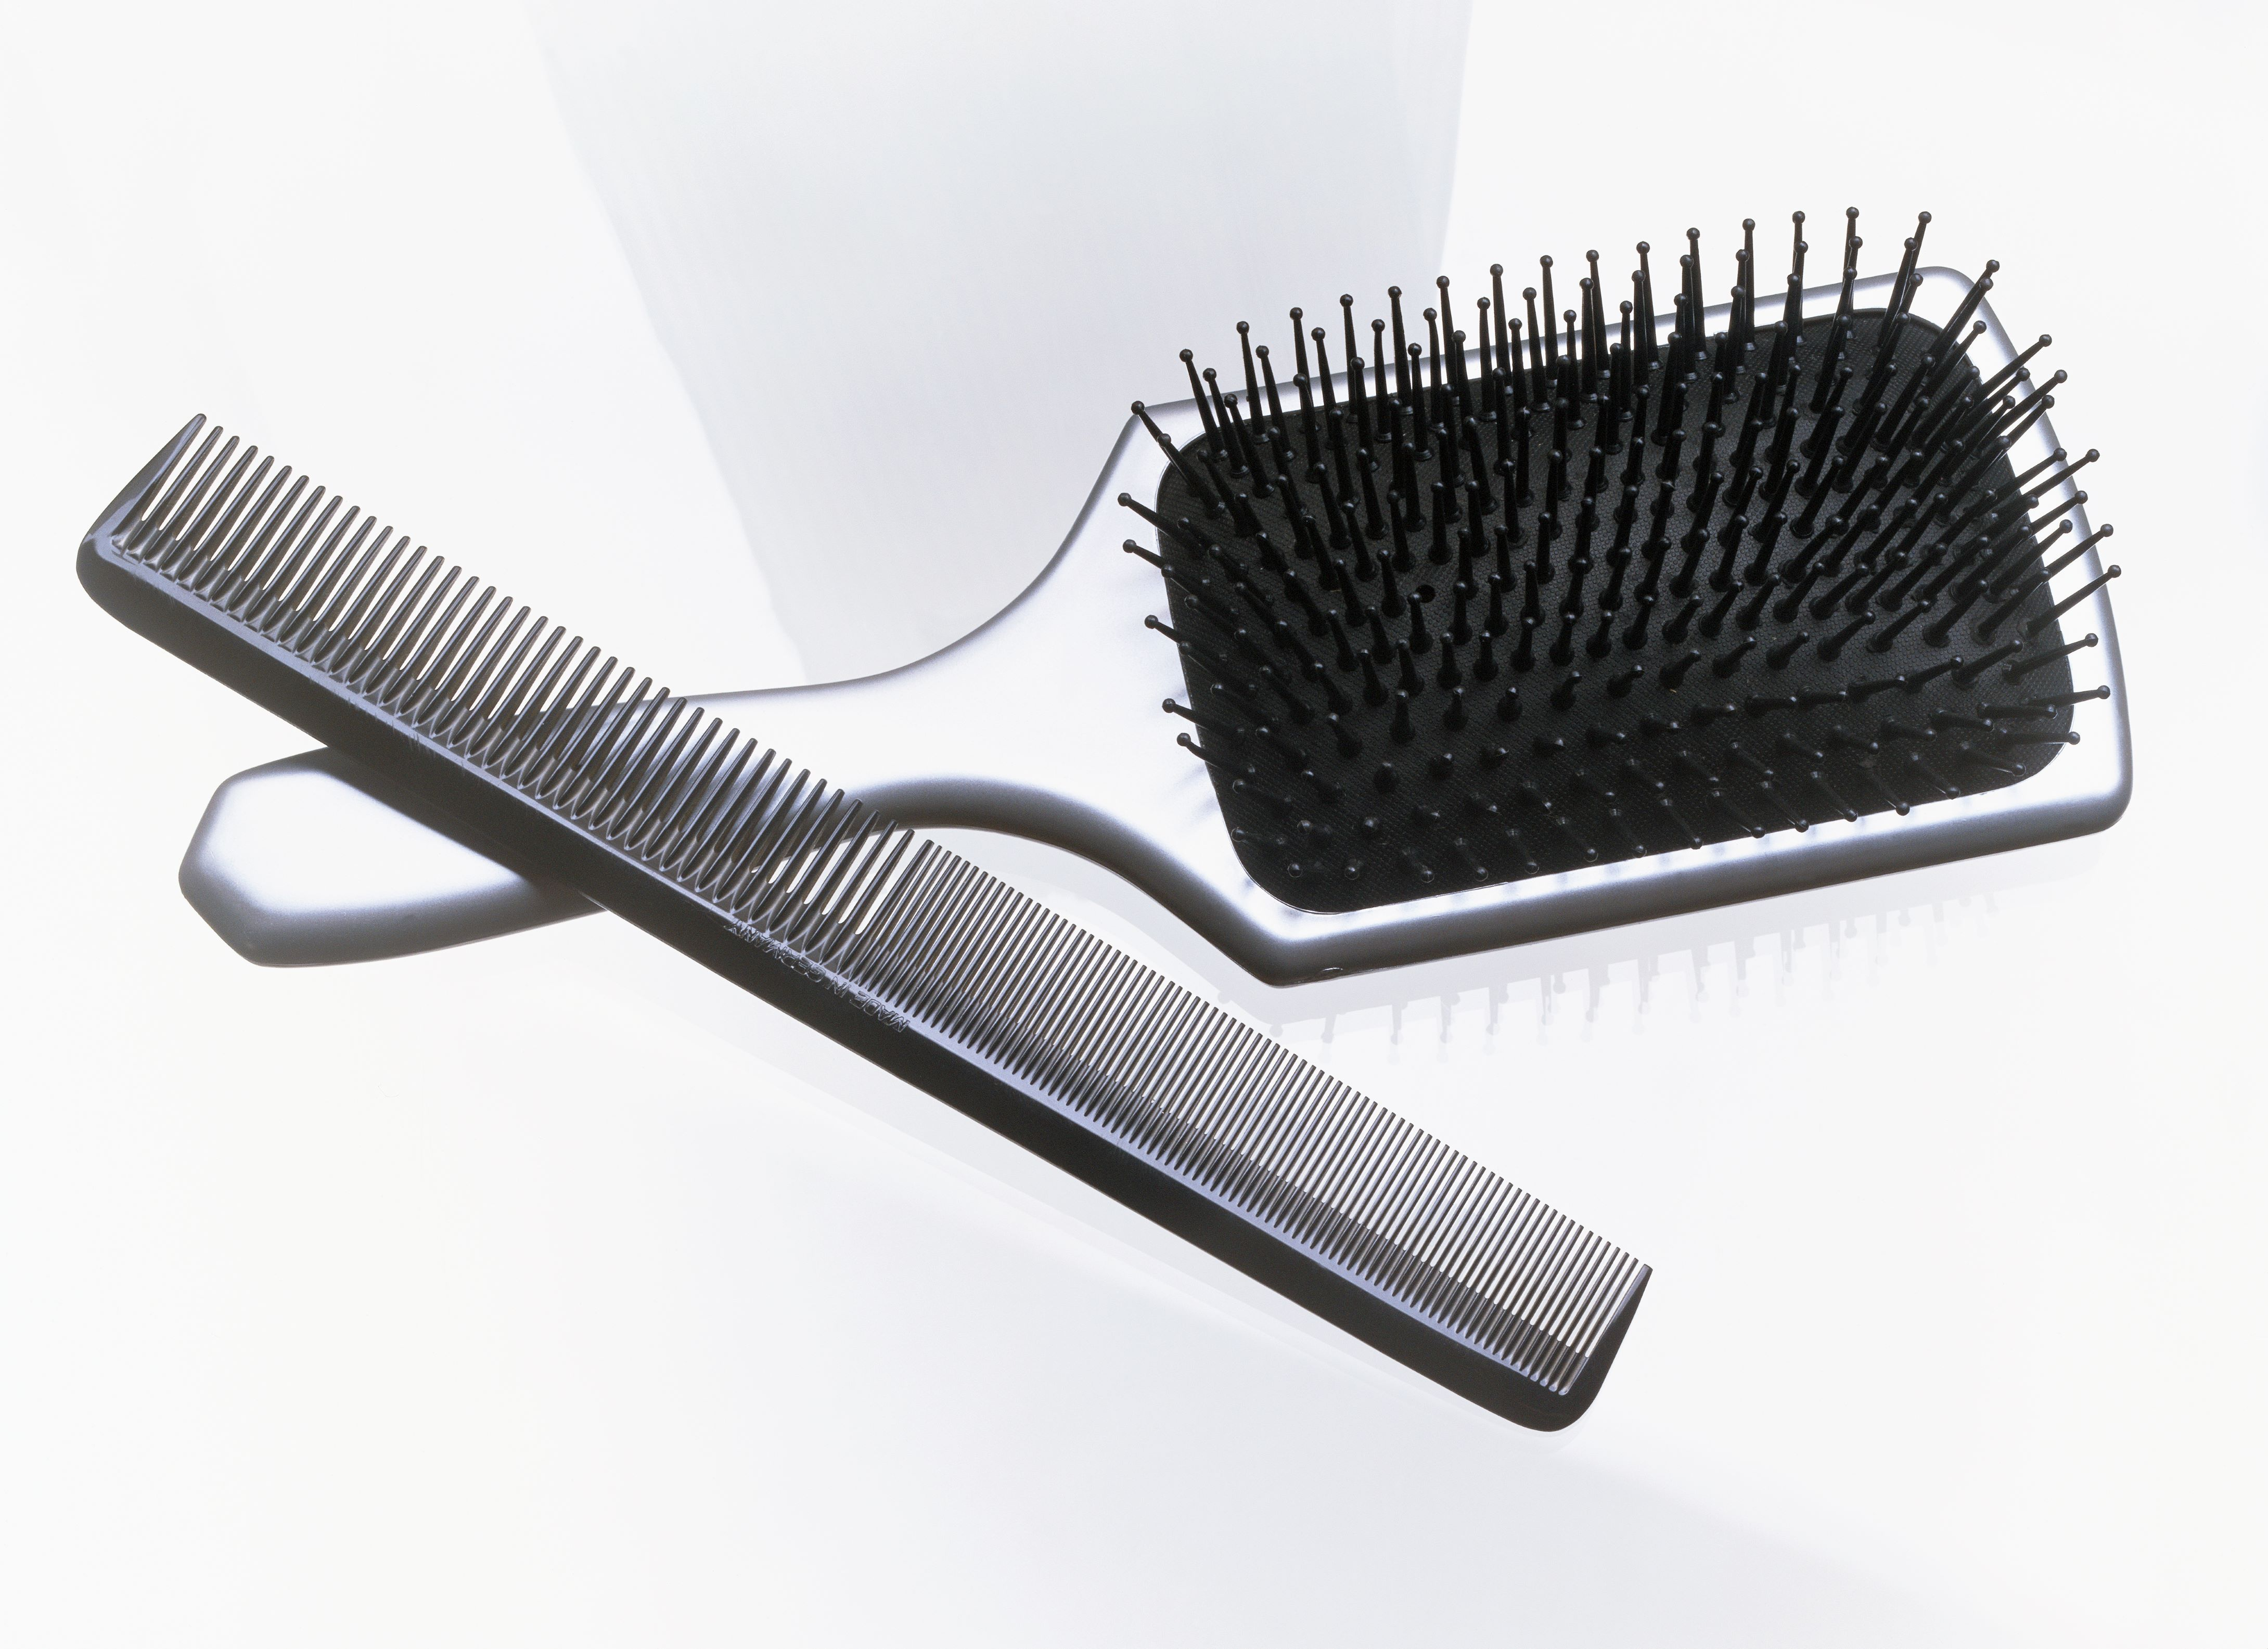 How to Clean Combs and Brushes: Tutorial